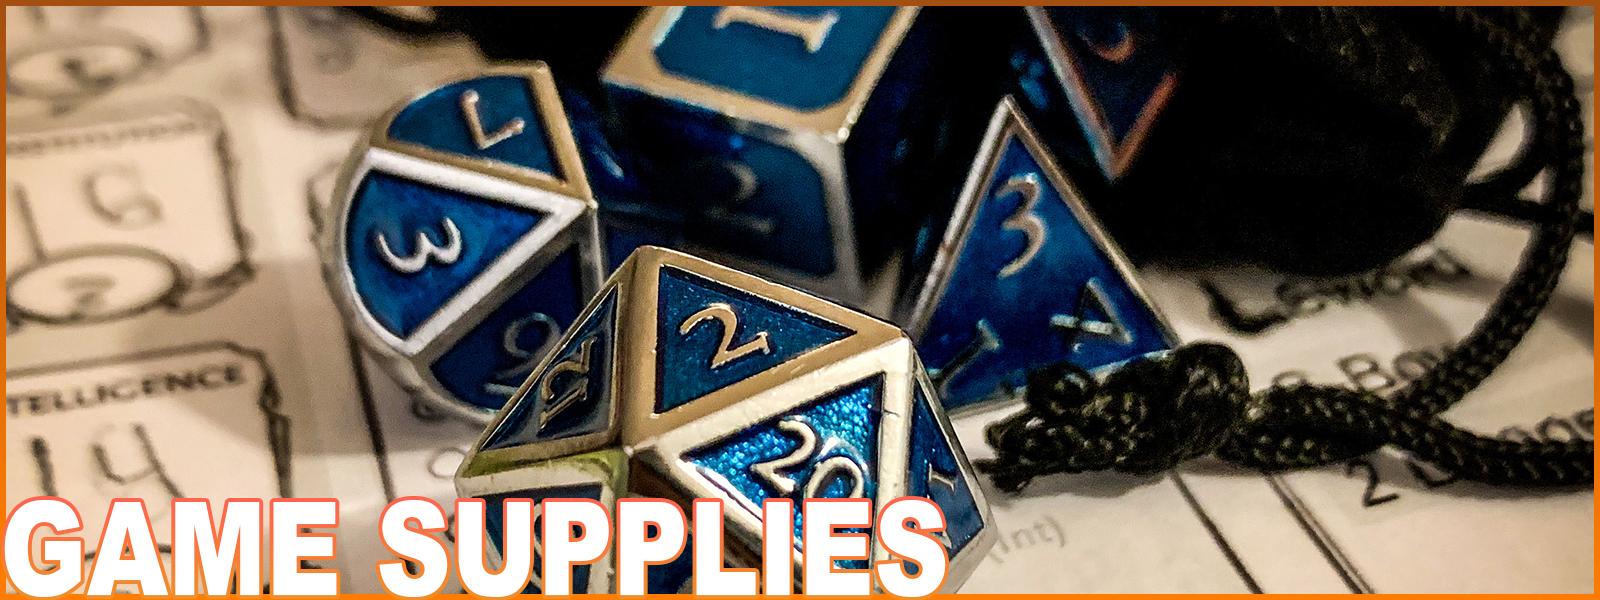 game-supplies-banner.jpg